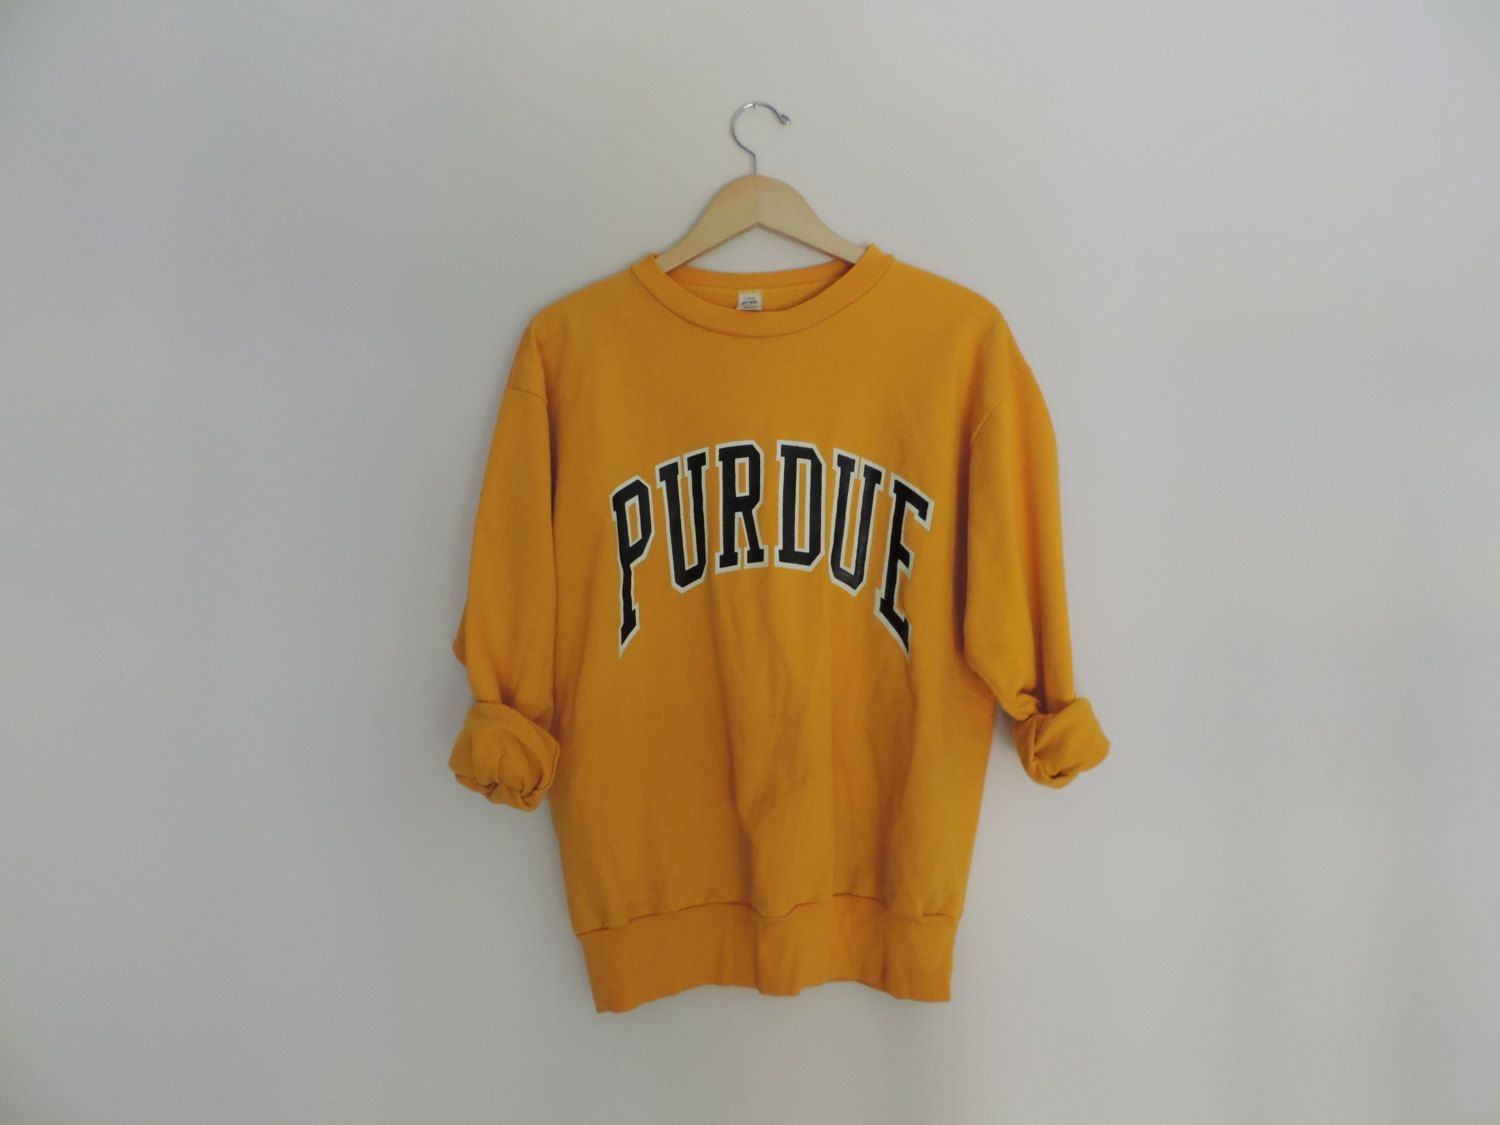 Color printing at purdue - Color Printing Ucla Vintage Purdue University Gold Black Crewneck Pullover Sweatshirt Size Large